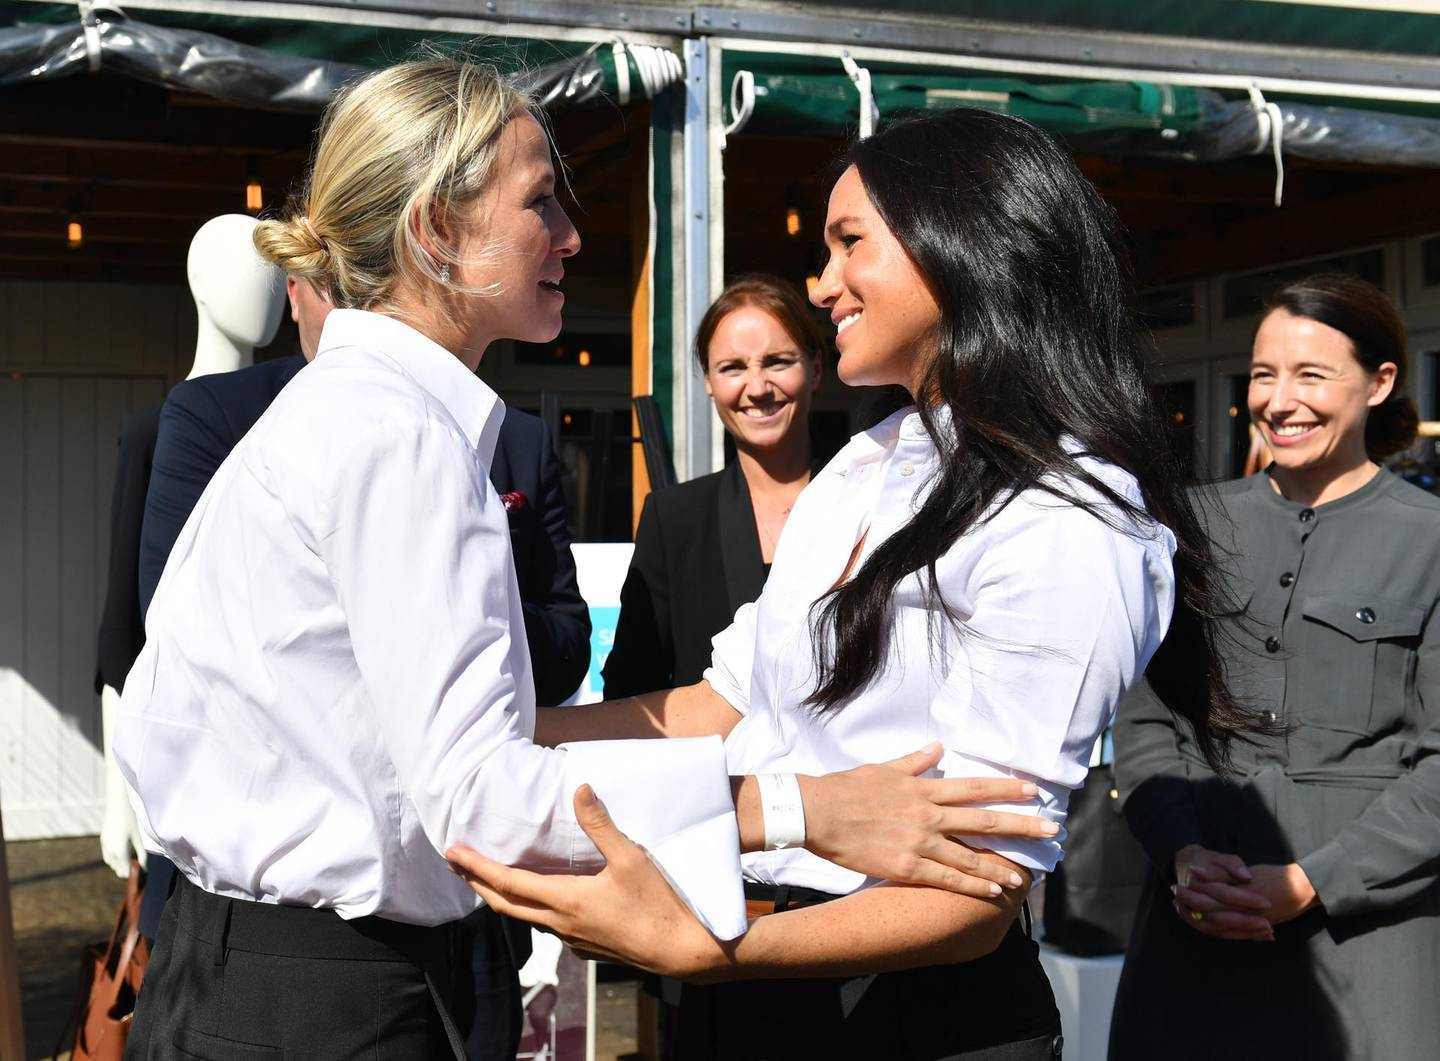 LONDON, ENGLAND - SEPTEMBER 12: Meghan, Duchess of Sussex embraces designer Misha Nonoo as she launches the Smart Works capsule collection on September 12, 2019 in London, England. Created in September 2013 Smart Works exists to help unemployed women regain the confidence they need to succeed at job interviews and return to employment. (Photo by Mark Large - WPA Pool/Getty Images)